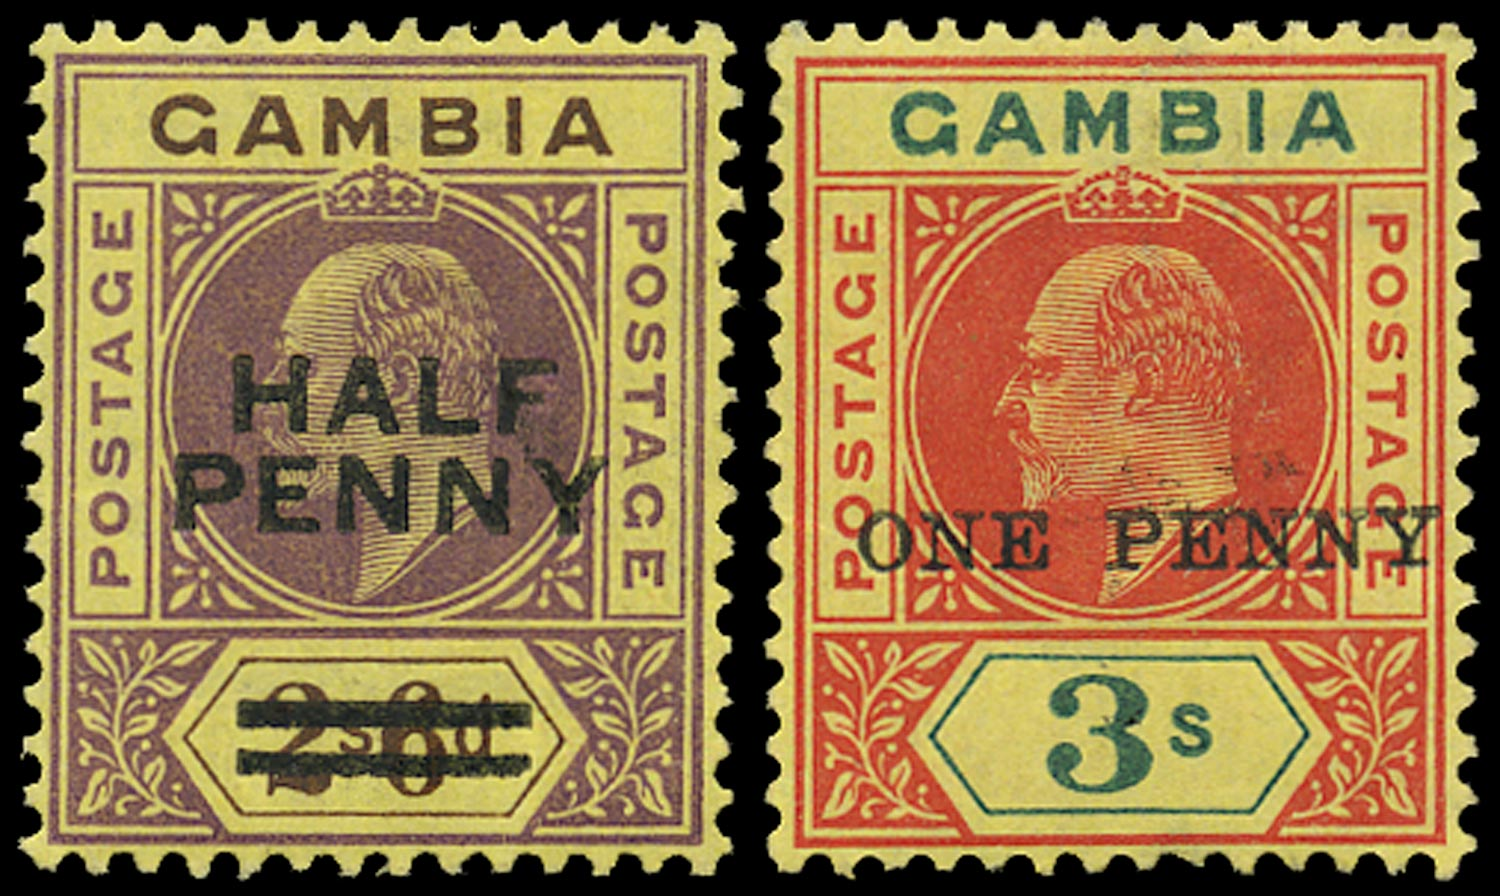 GAMBIA 1906  SG69/70 Mint unmounted ½d on 2s6d and 1d on 3s